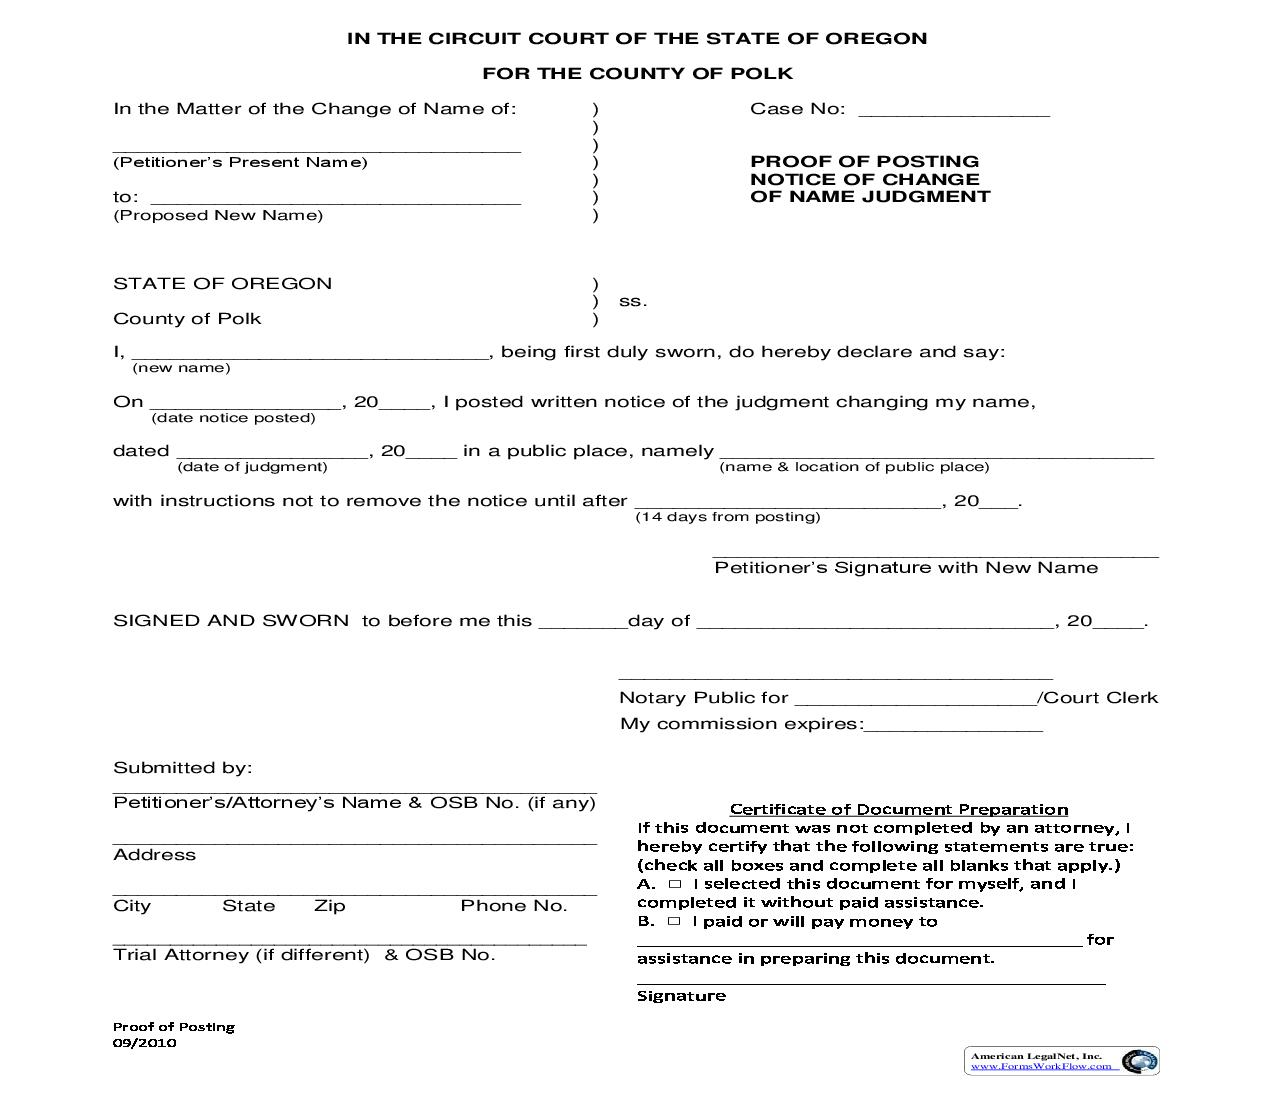 Proof Of Posting Notice Of Change Of Name Judgment | Pdf Fpdf Doc Docx | Oregon